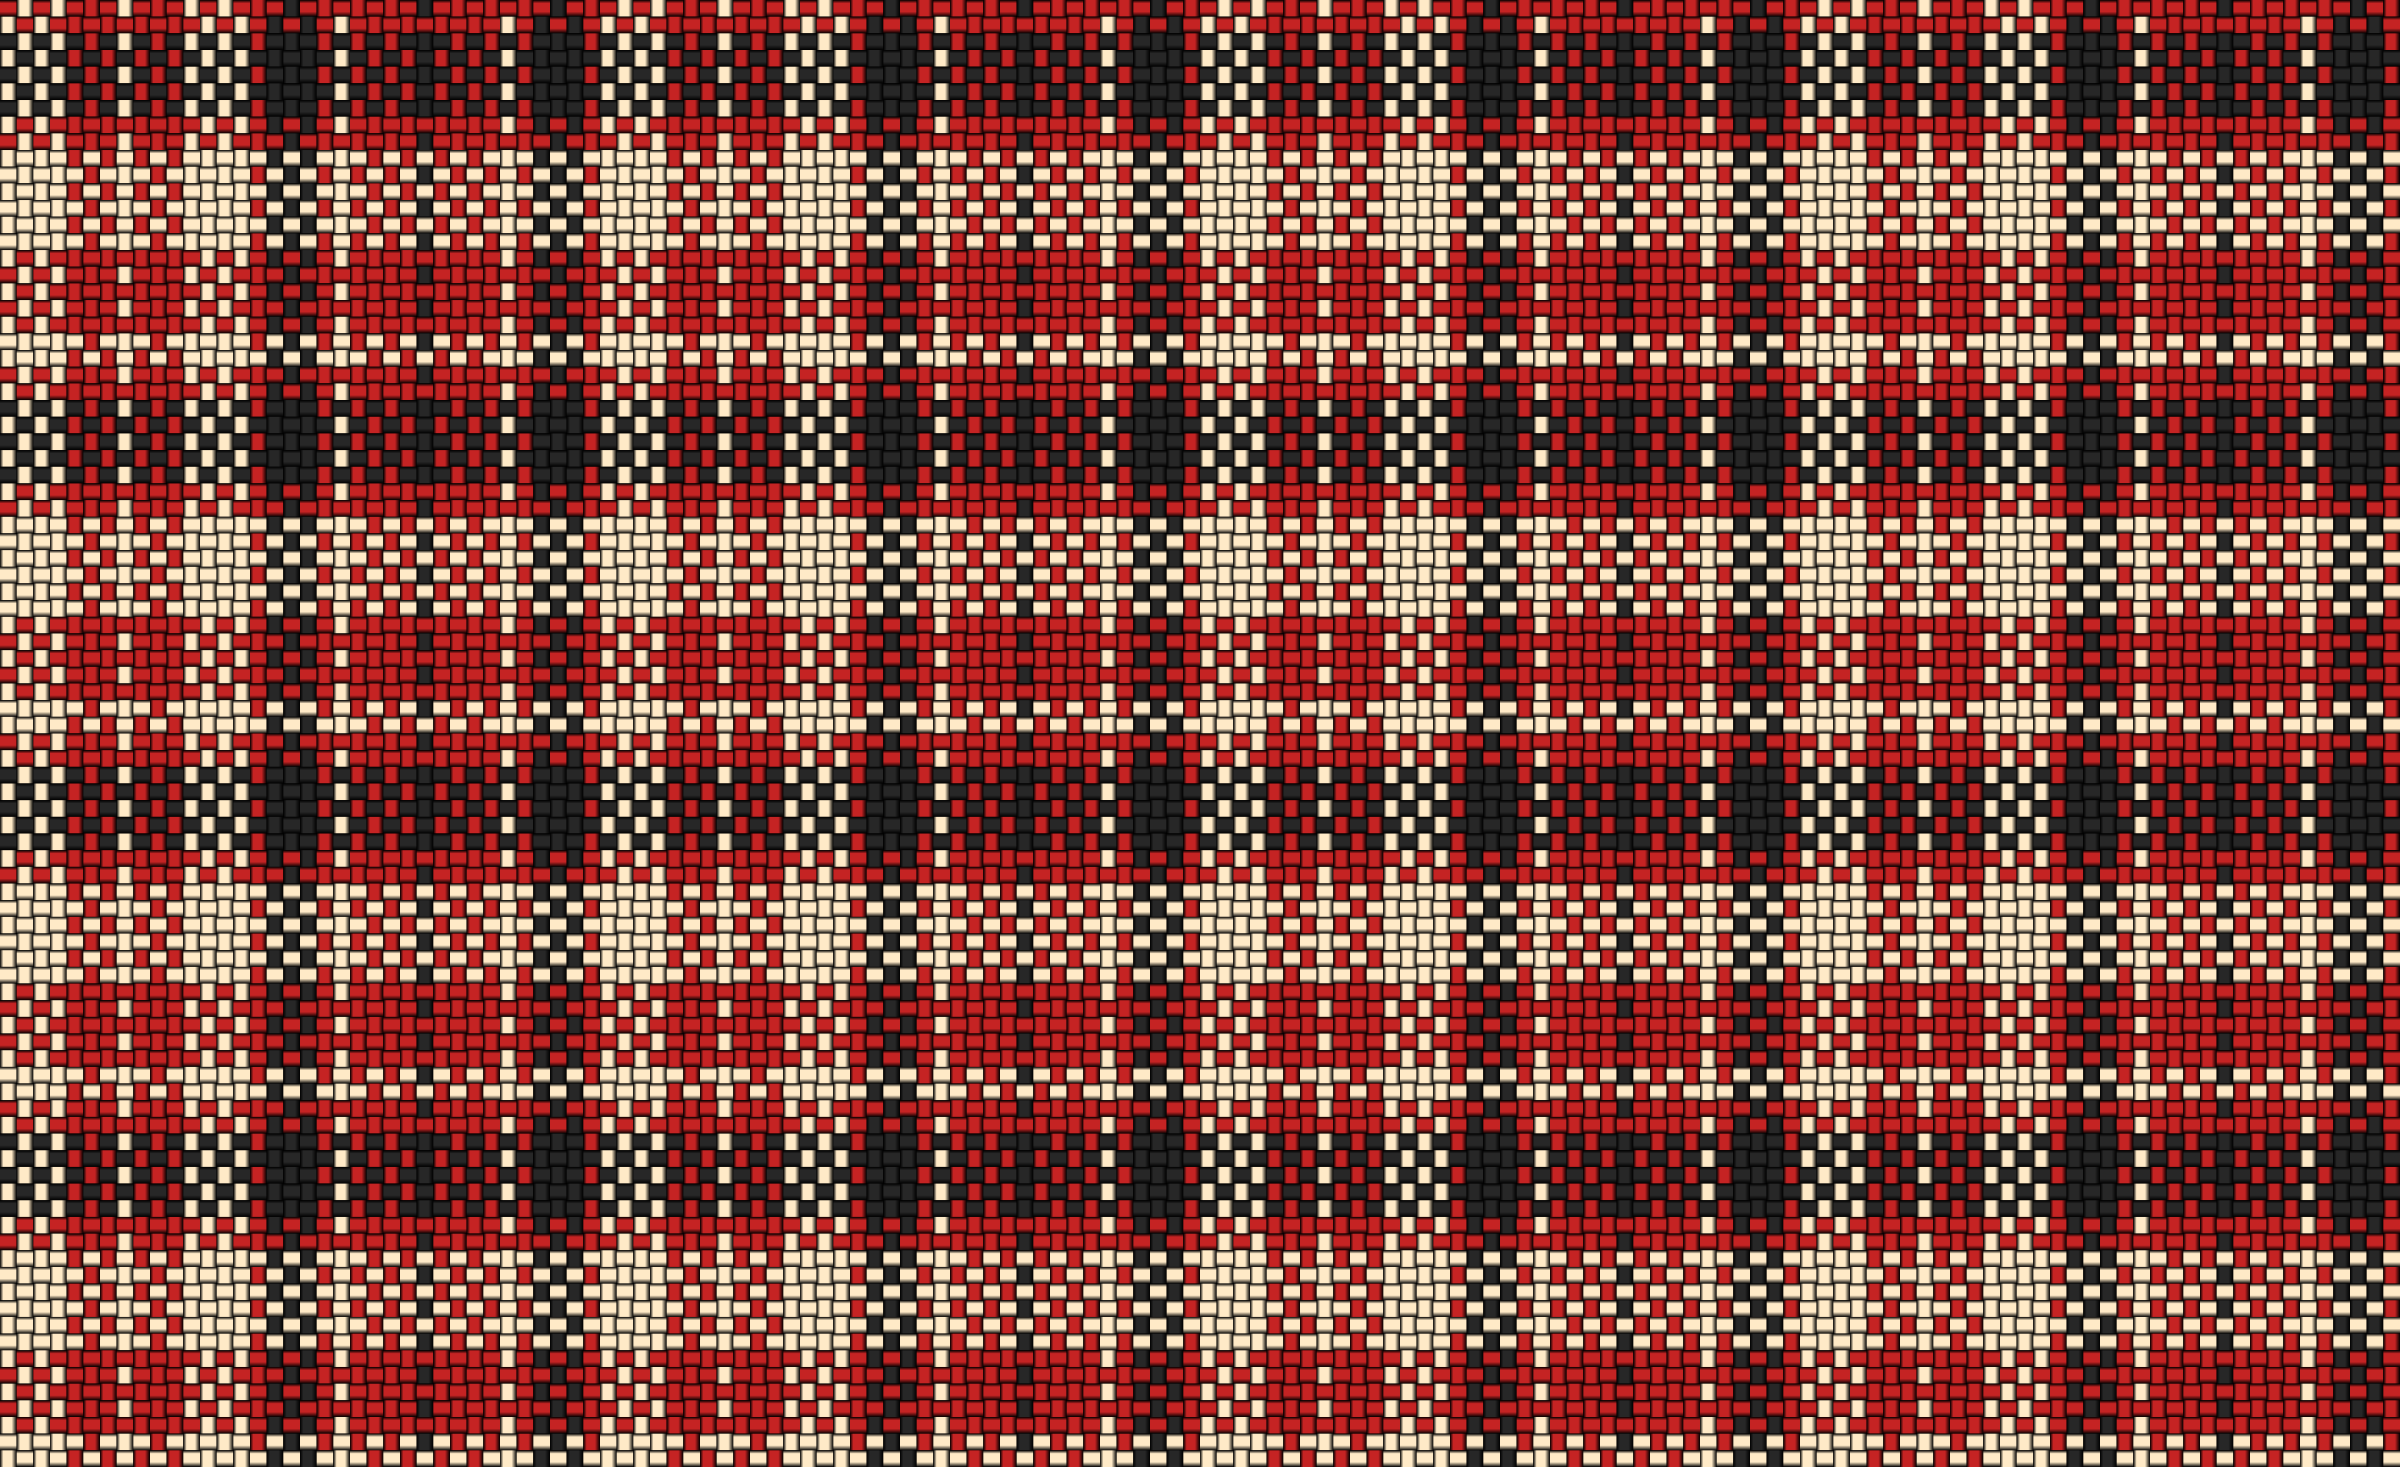 Woven Plaid Cloth Red by gubrww2